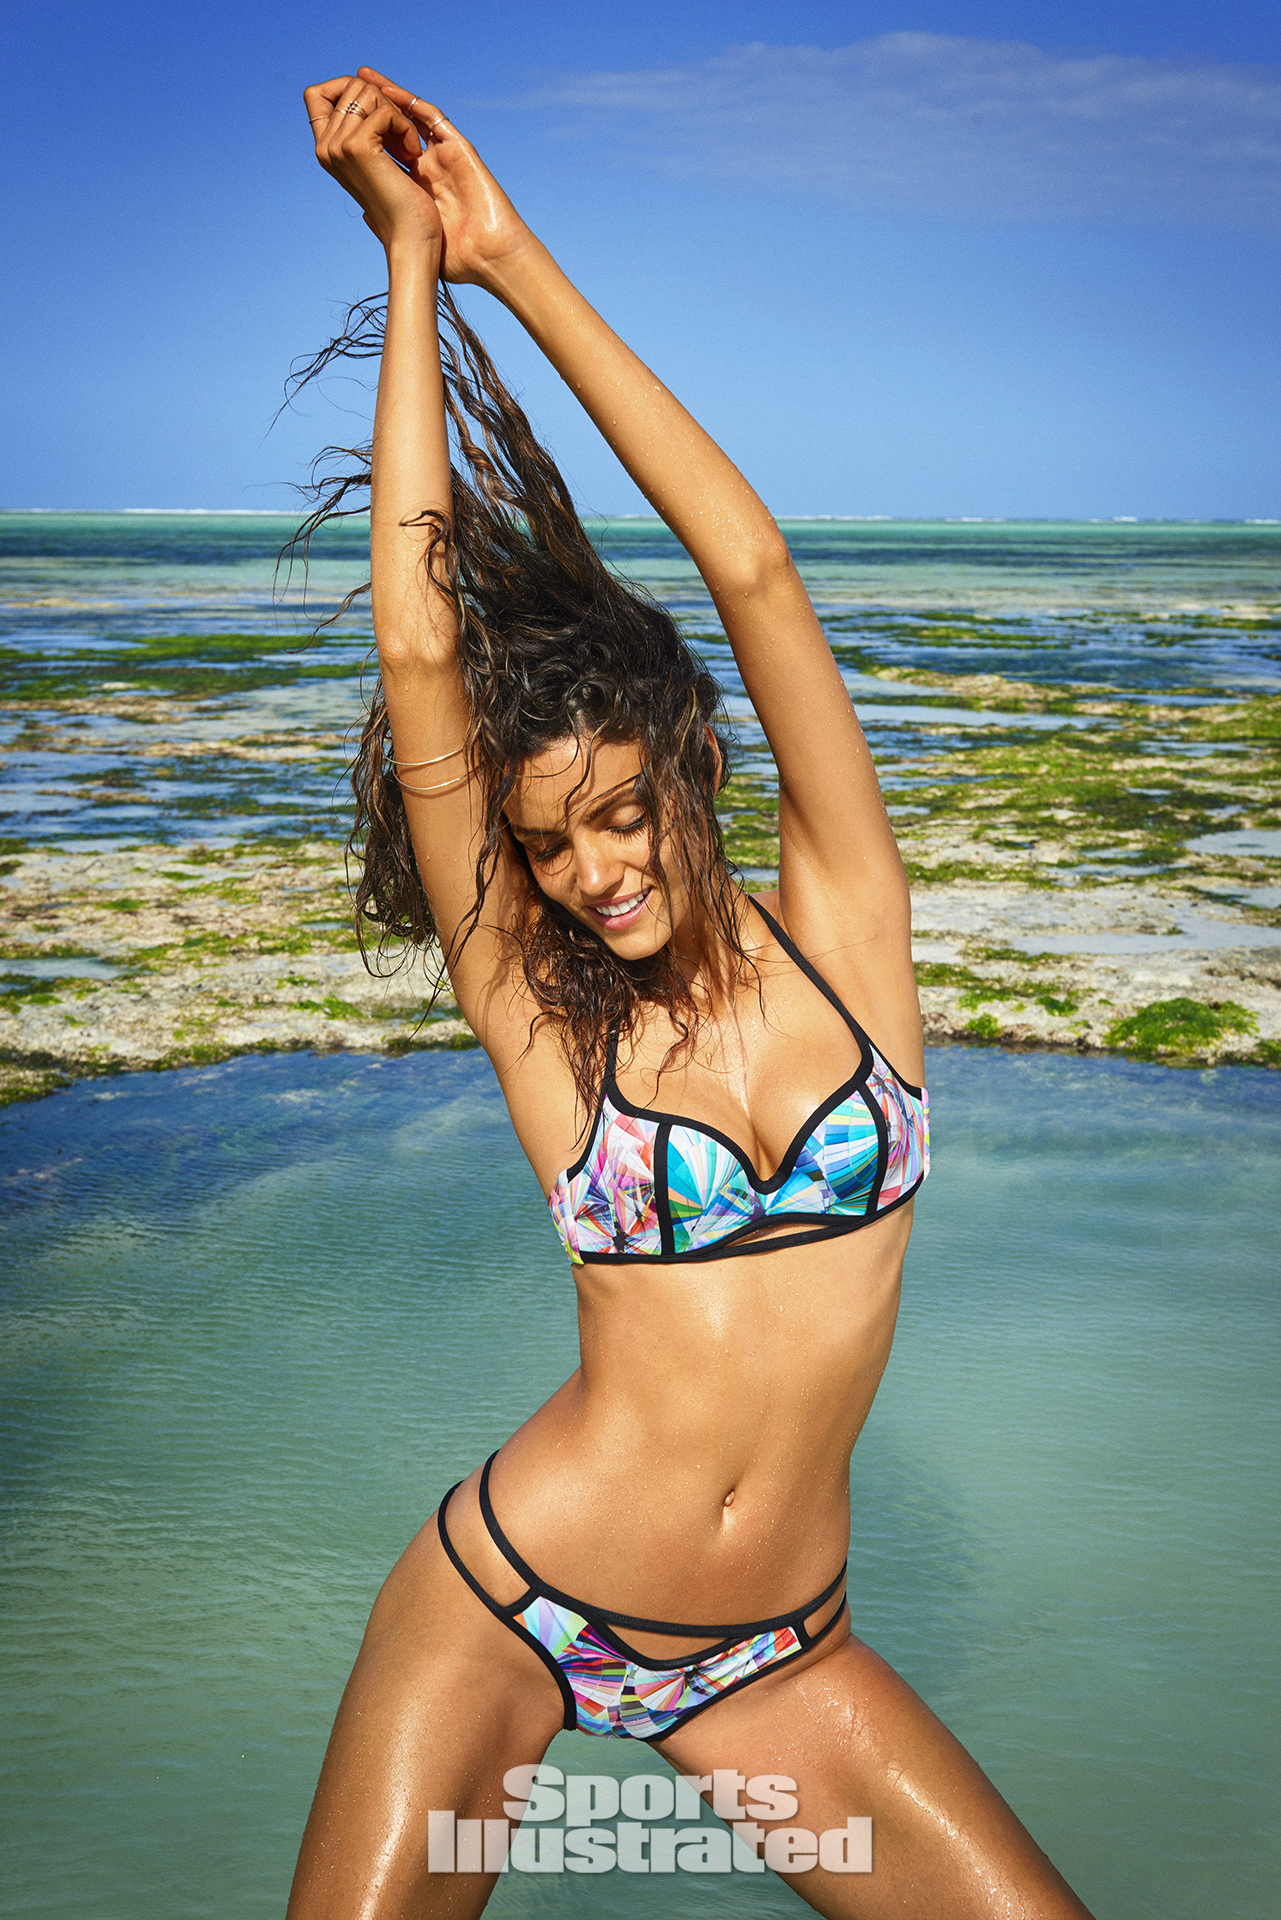 Sofia Resing was photographed by Ruven Afanador in Zanzibar.